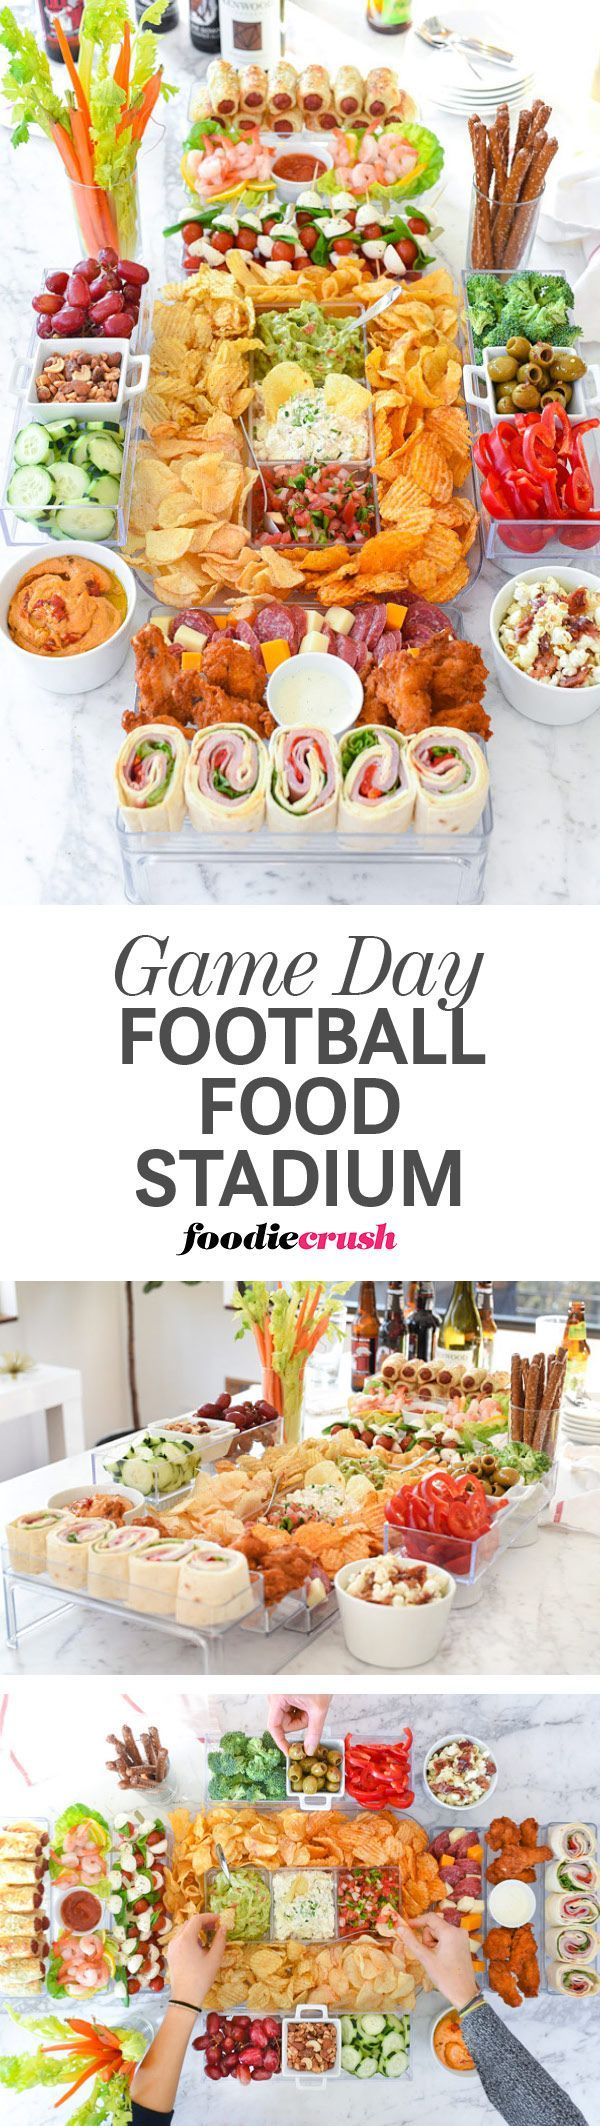 How to Build a Game Day Football Food Stadium and 20 Recipe Ideas to Fill It With | http://foodiecrush.com